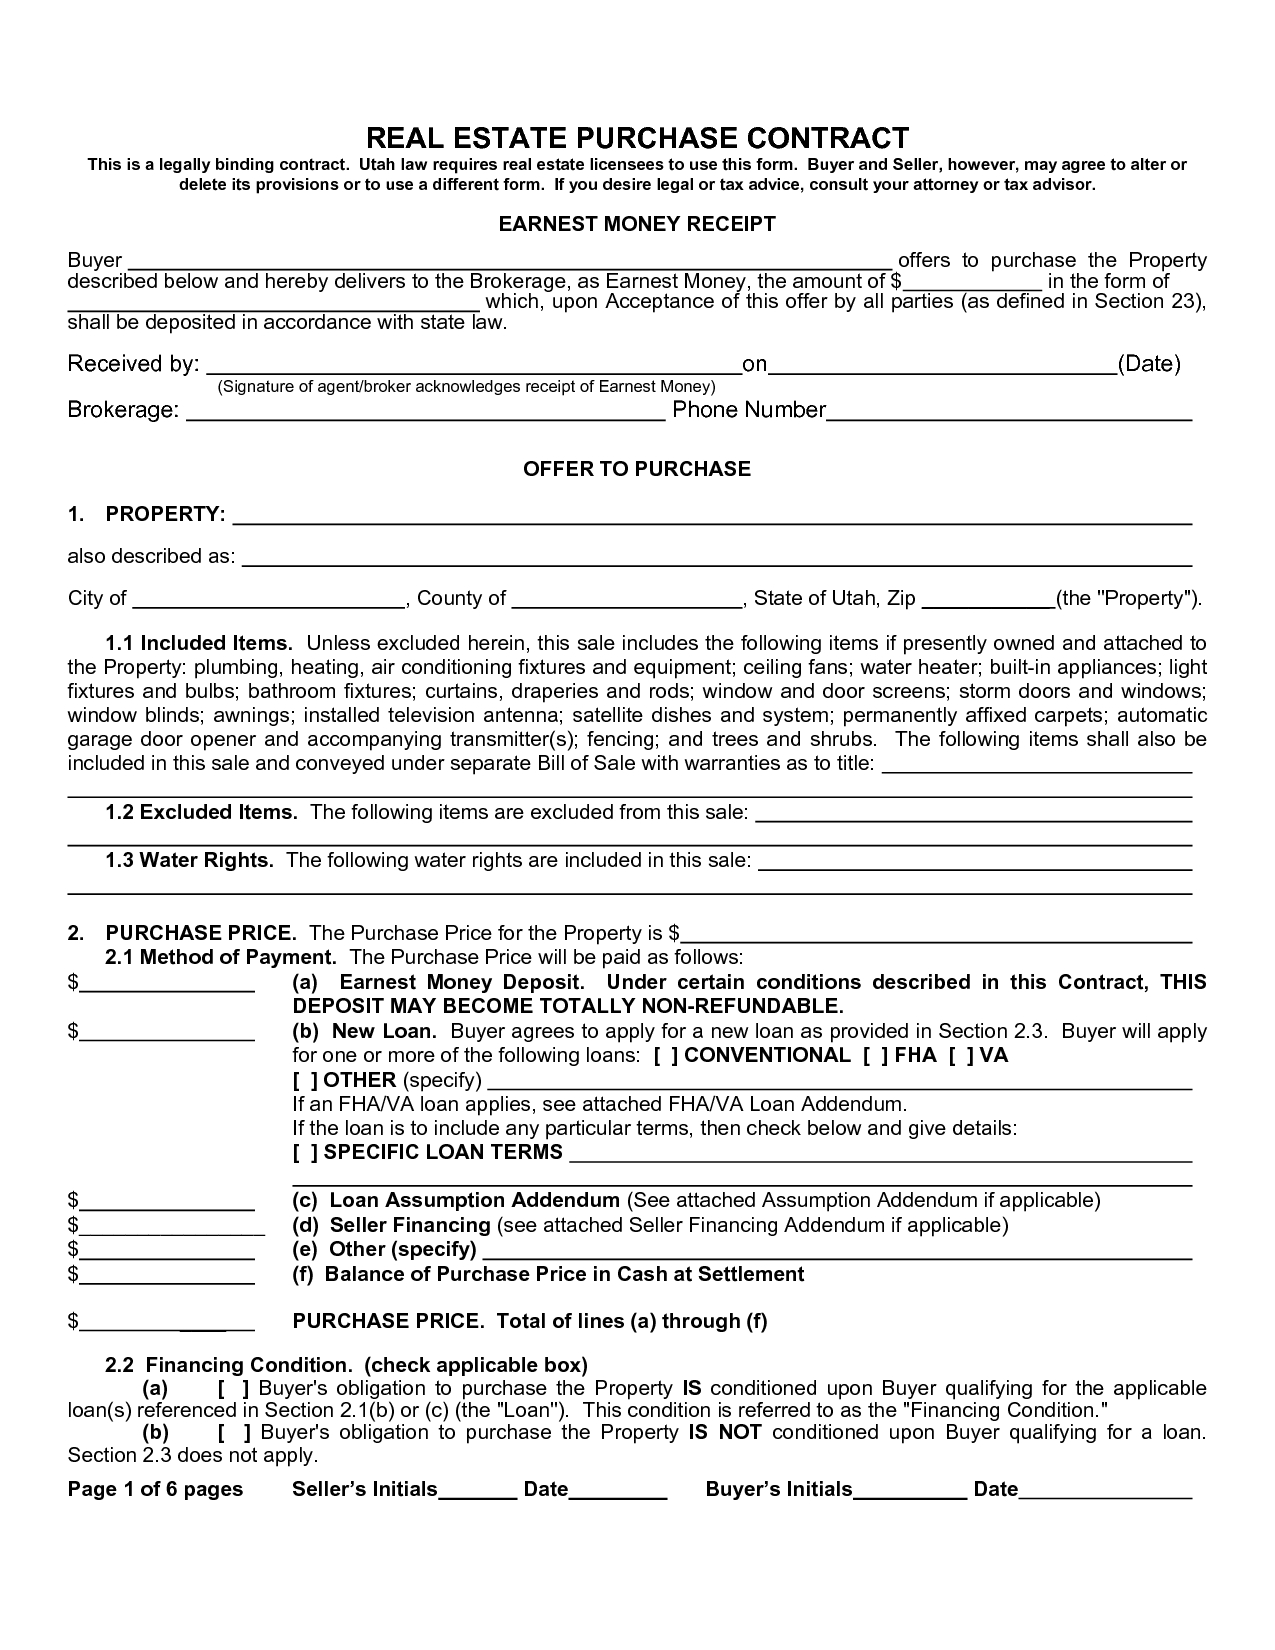 Real Estate Purchase Agreement Form Sample Image Gallery - Imggrid - Free Printable Real Estate Purchase Agreement